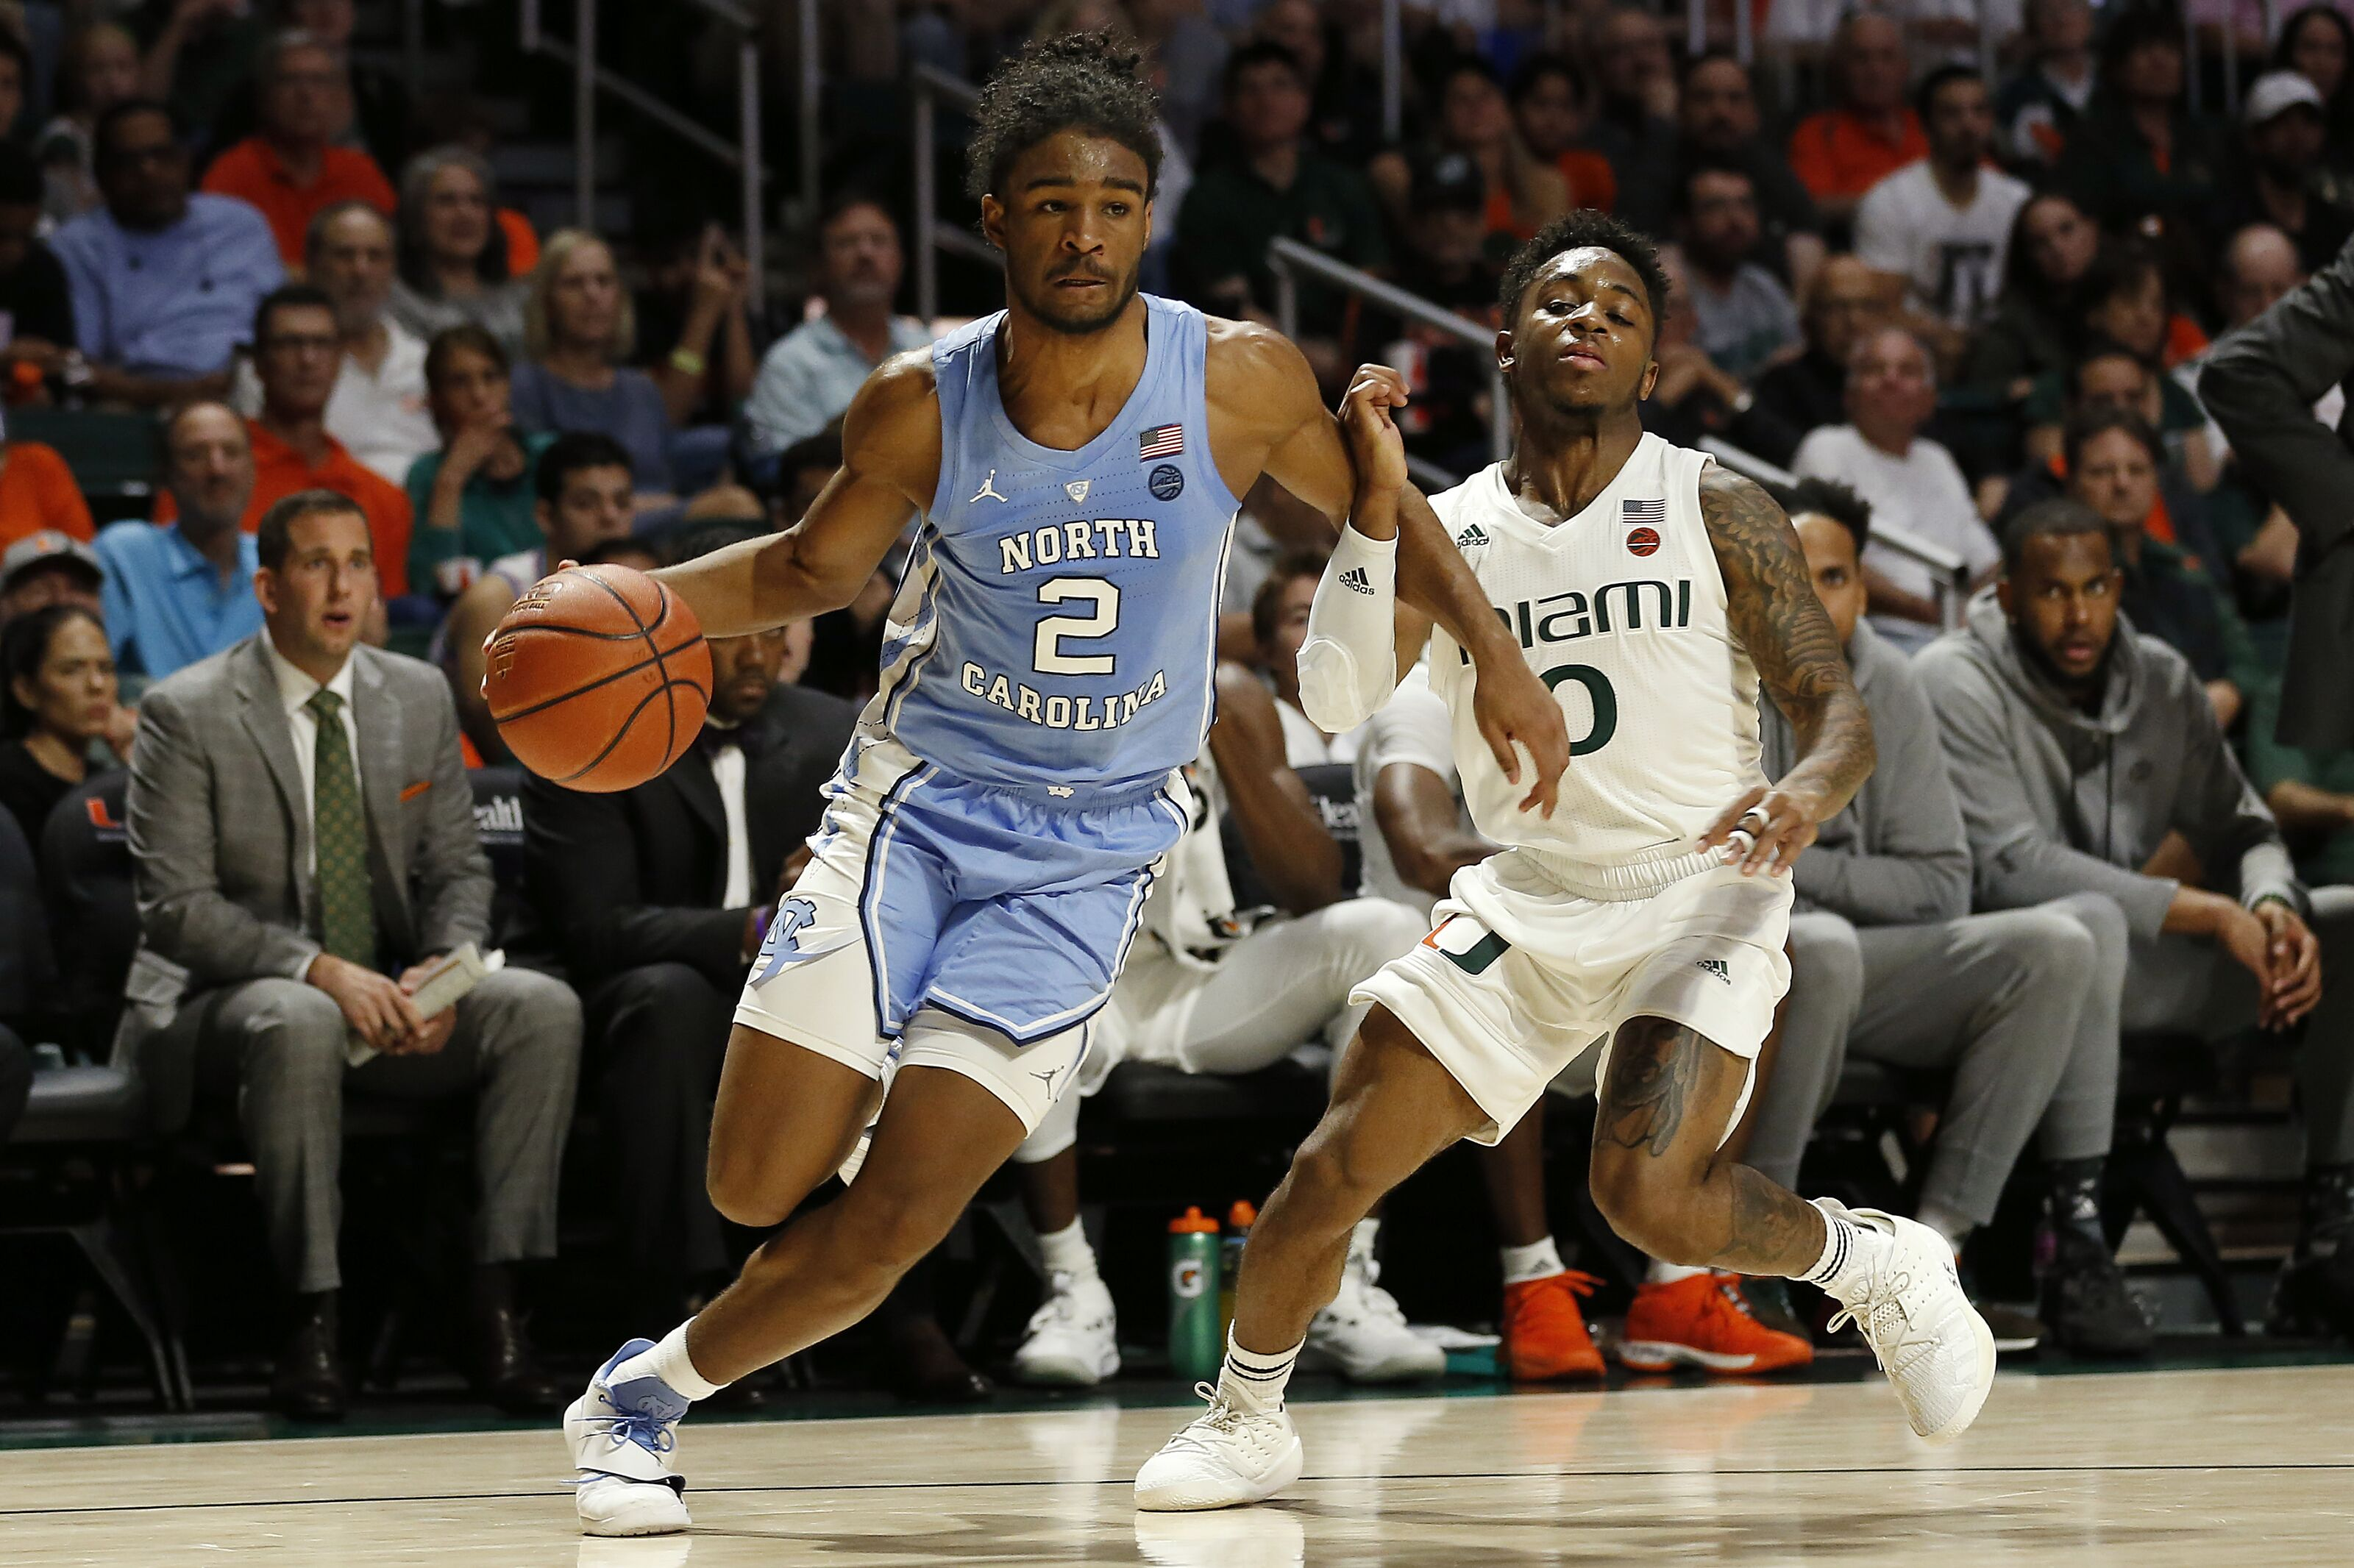 Miami basketball fades again late in loss to North Carolina